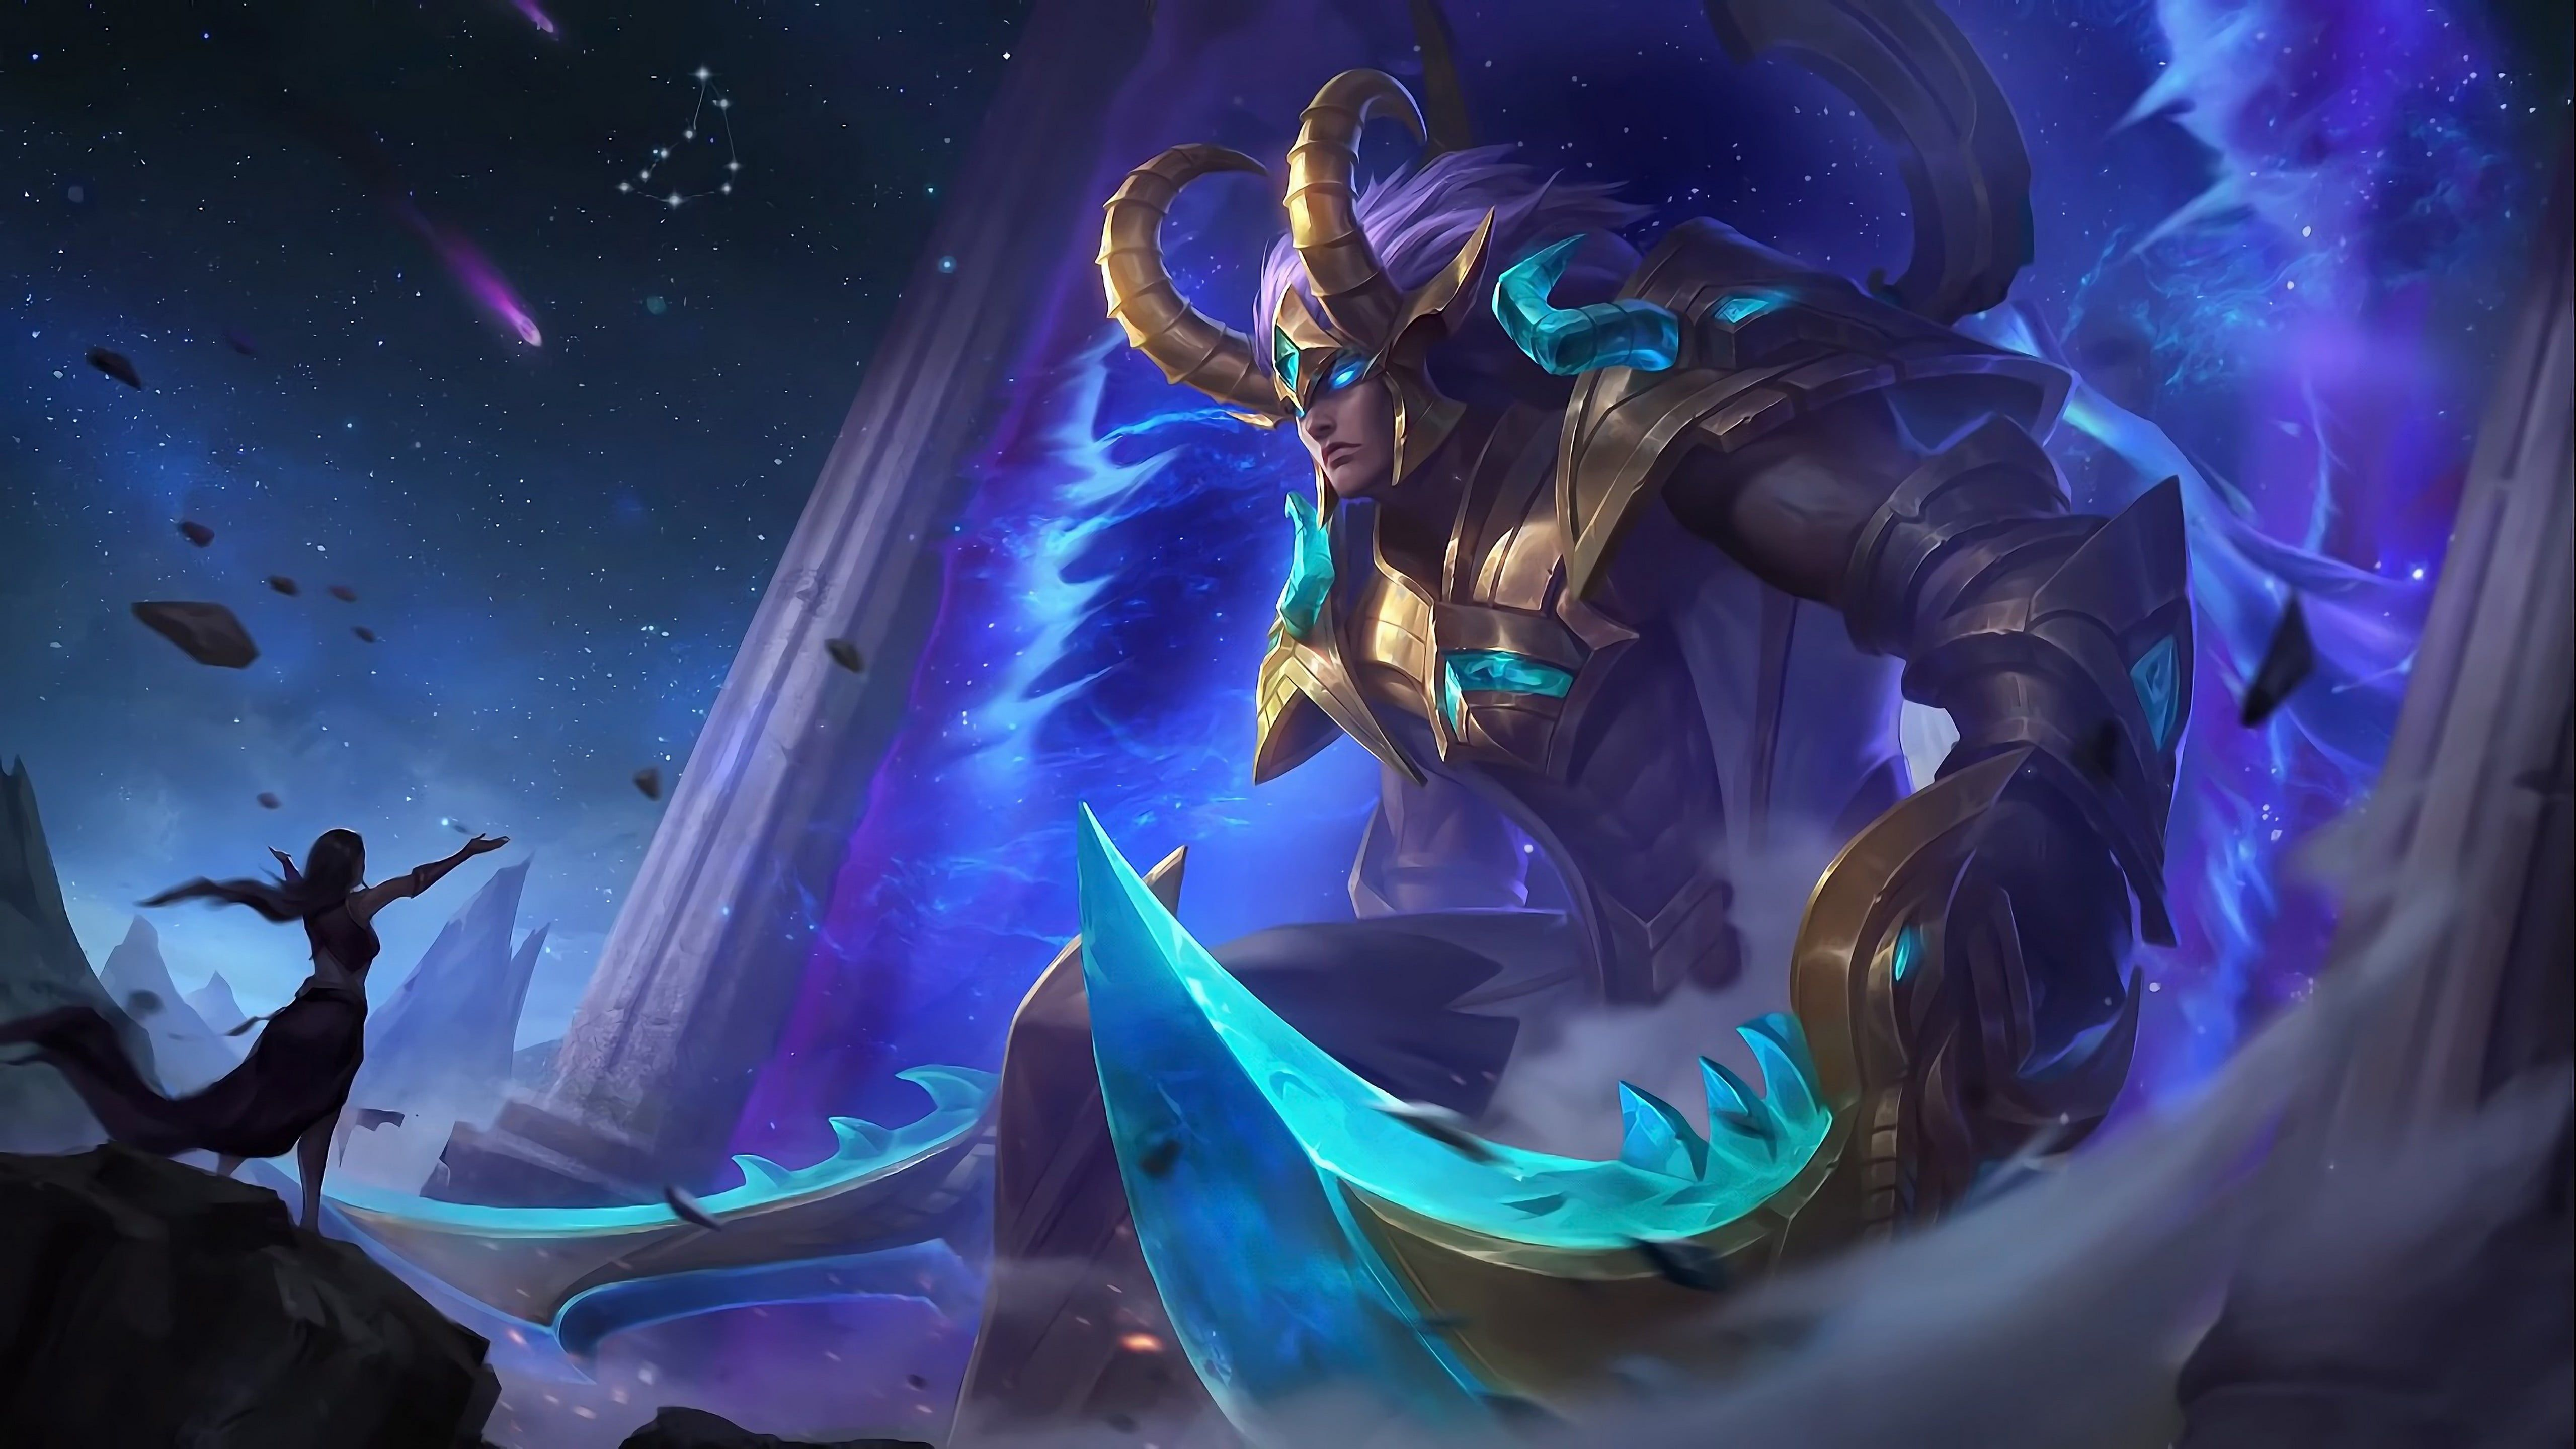 Mobile Legends Martis Capricorn 5k Wallpaper Hdwallpaper Desktop In 2020 Mobile Legend Wallpaper Mobile Legends Alucard Mobile Legends